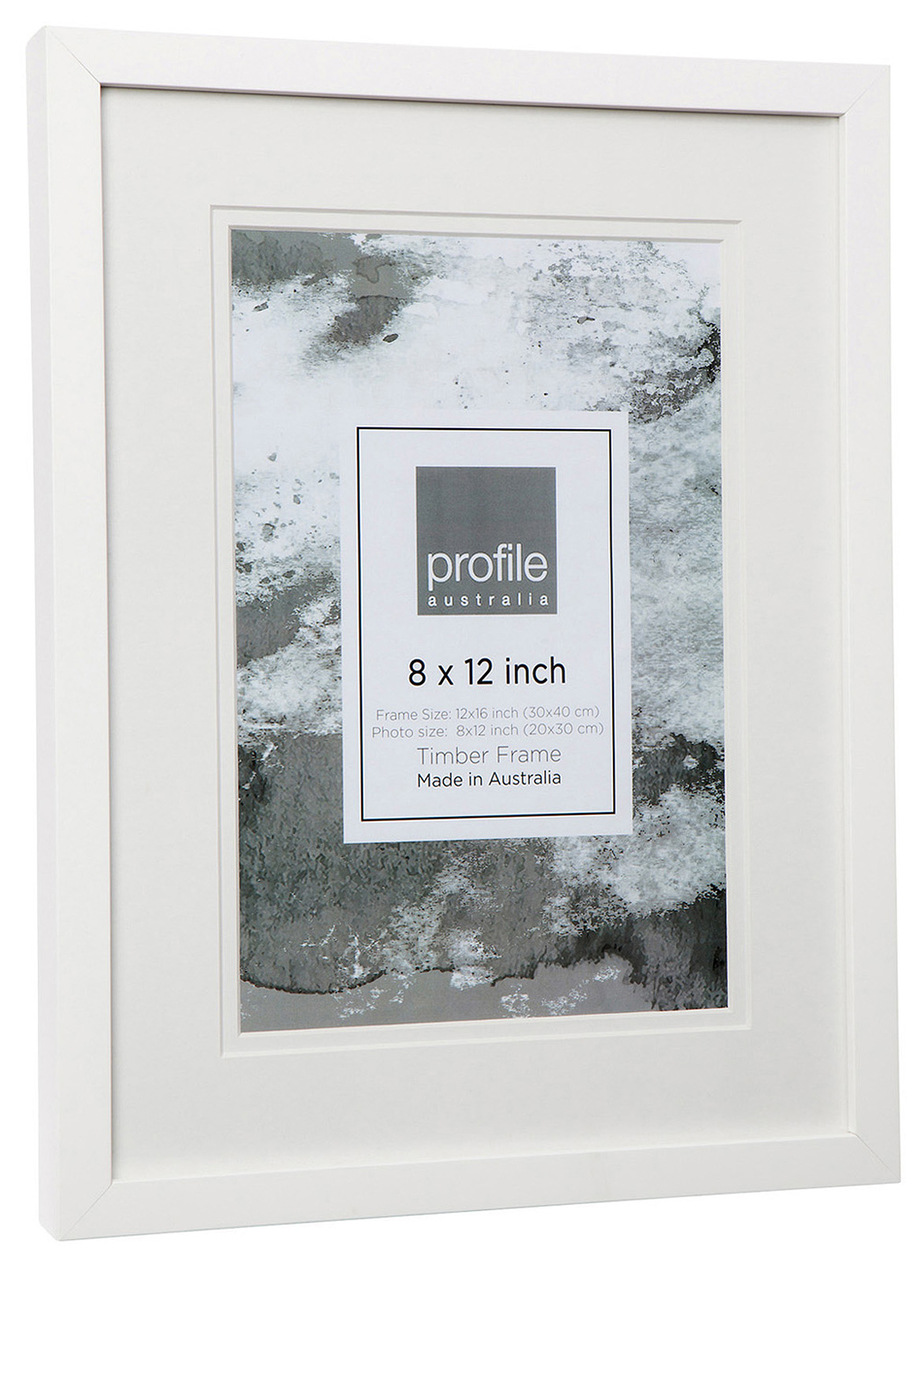 Profile | Deluxe Photo Frame 8x12"|920|1380|?|5e22c112dffee43b8fc5b14b3c692ff1|False|UNLIKELY|0.3379882574081421